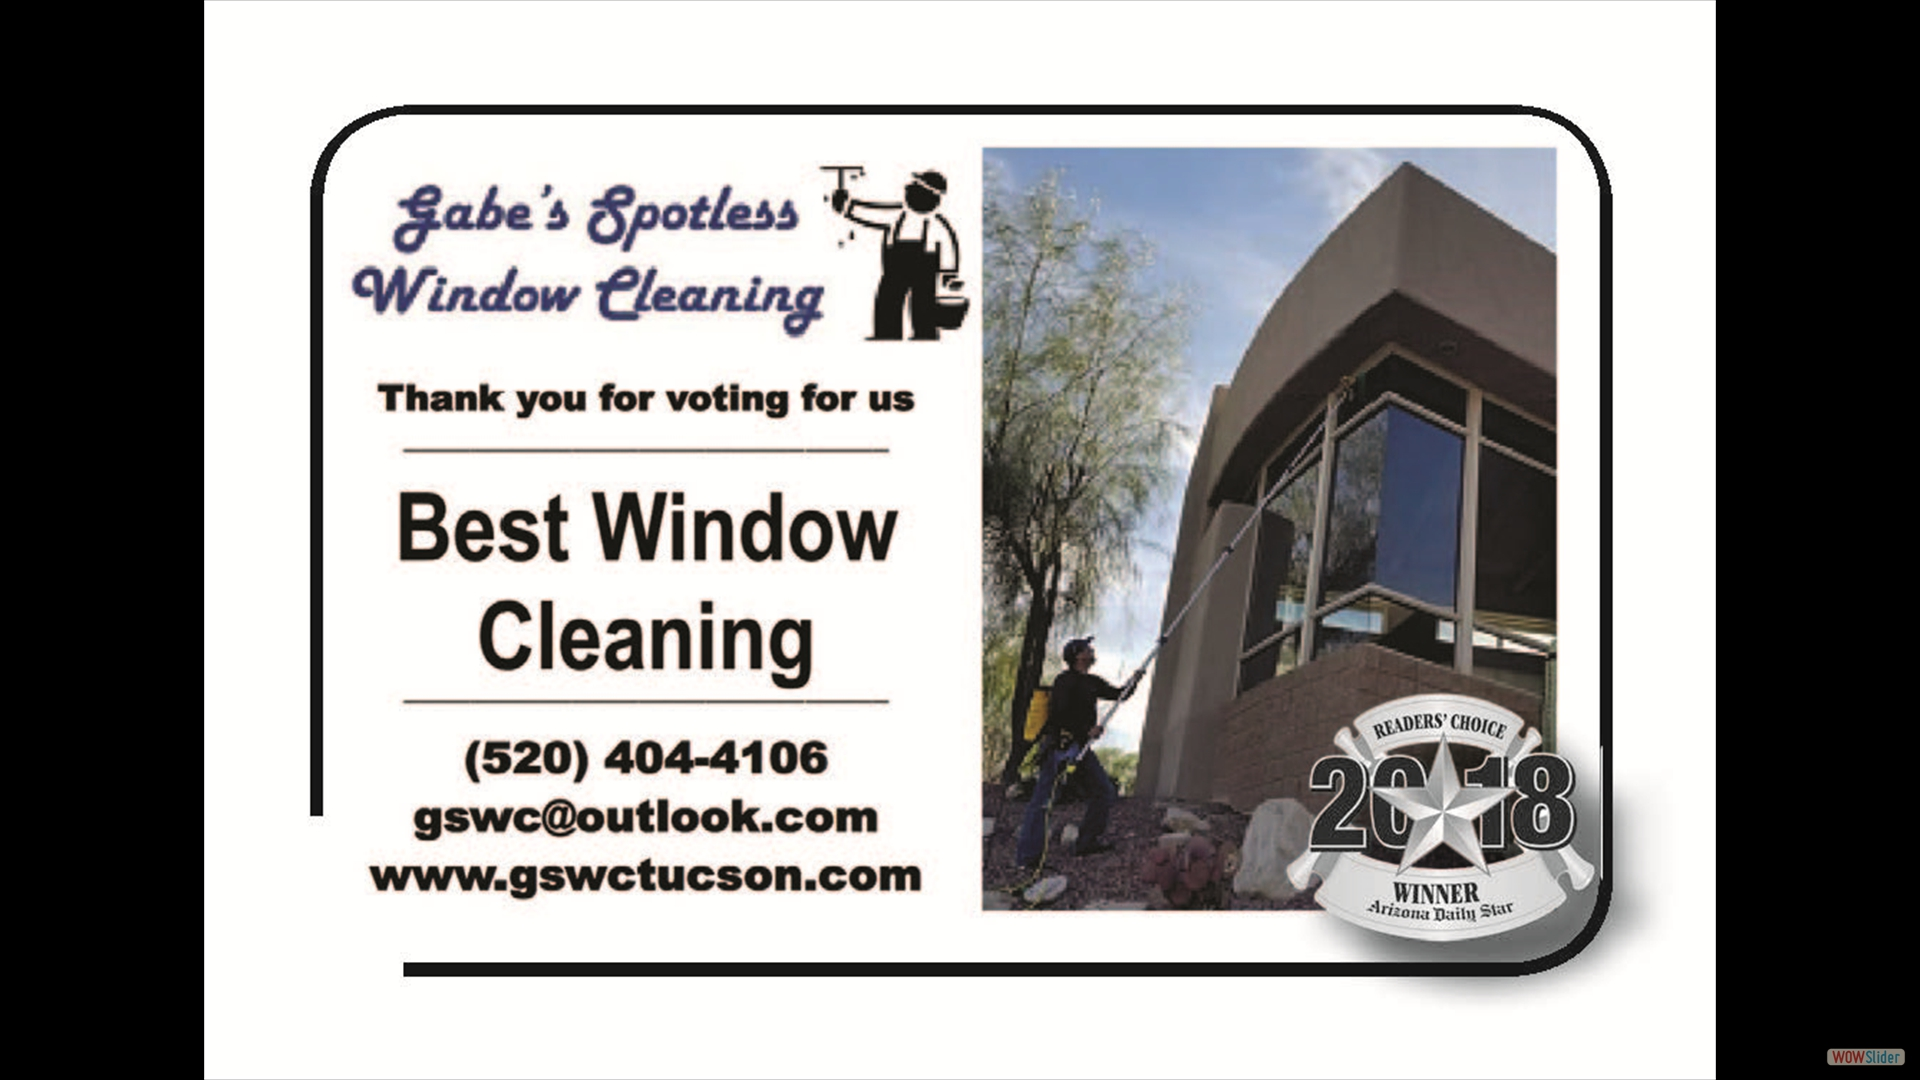 Gabes Spotless Window Cleaning